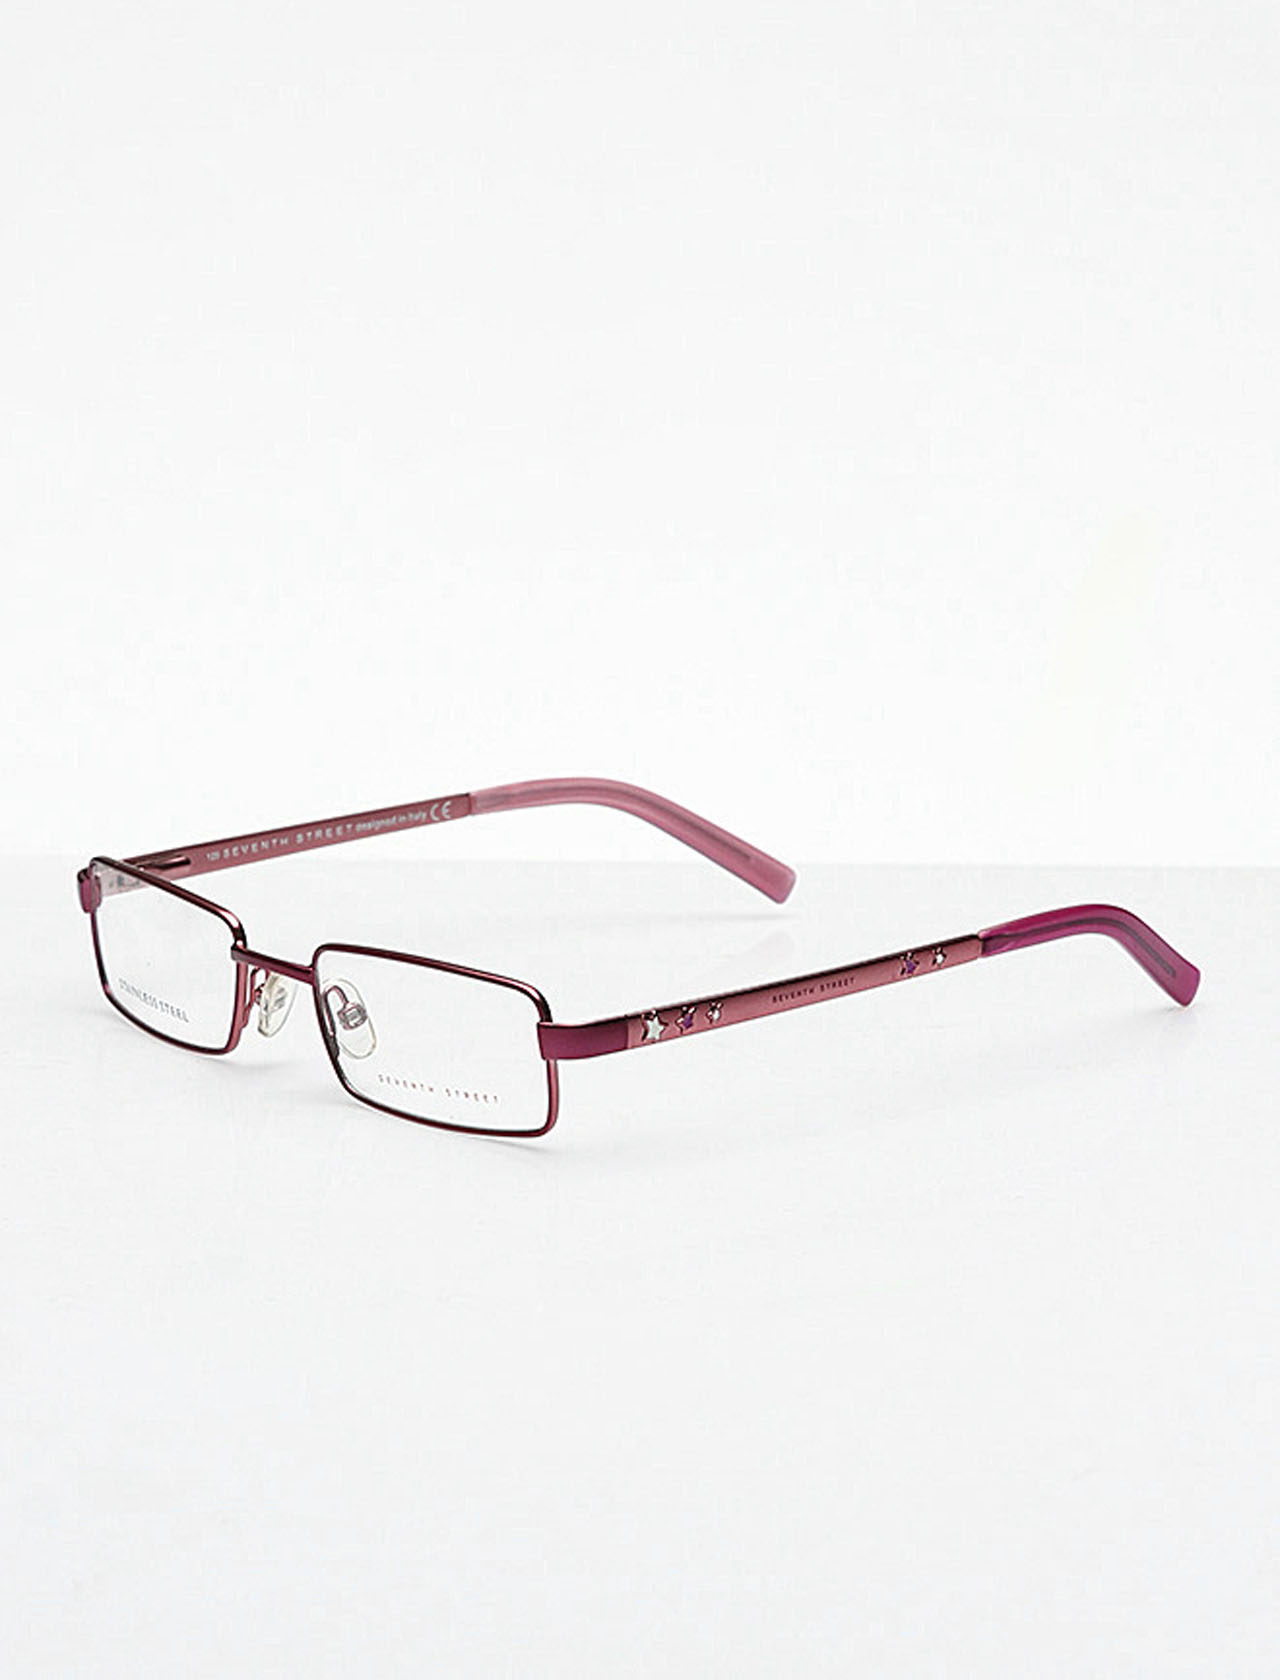 Markamilla Children Reading Glasses Frame Demo Glasses Eyewear Transparent High Quality ChildrenSeventh Street SS 137 MSH